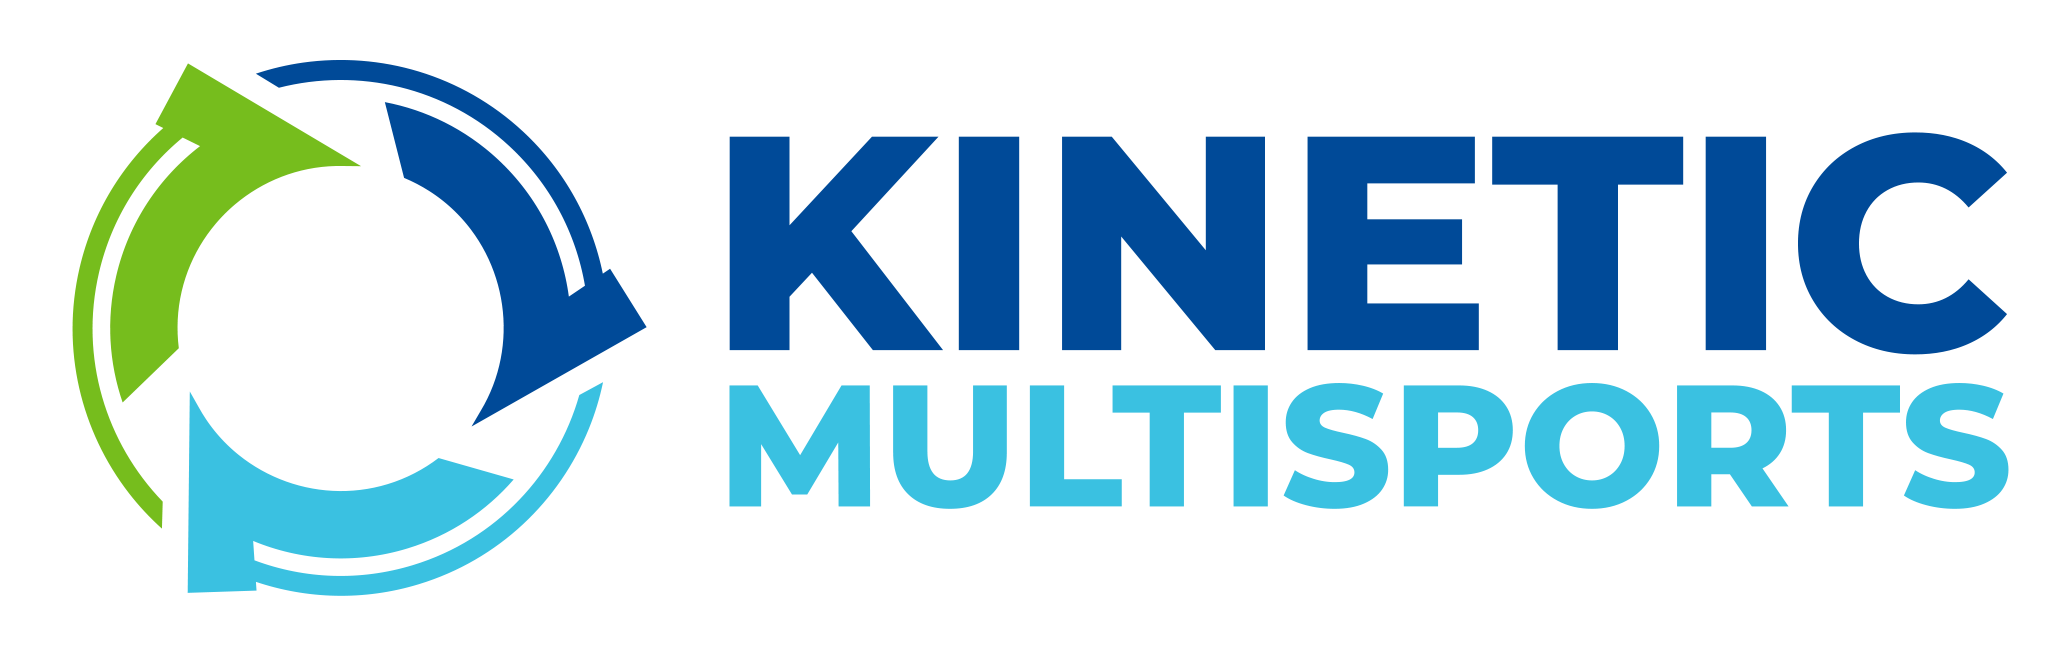 2020 Kinetic Multisports discount code!